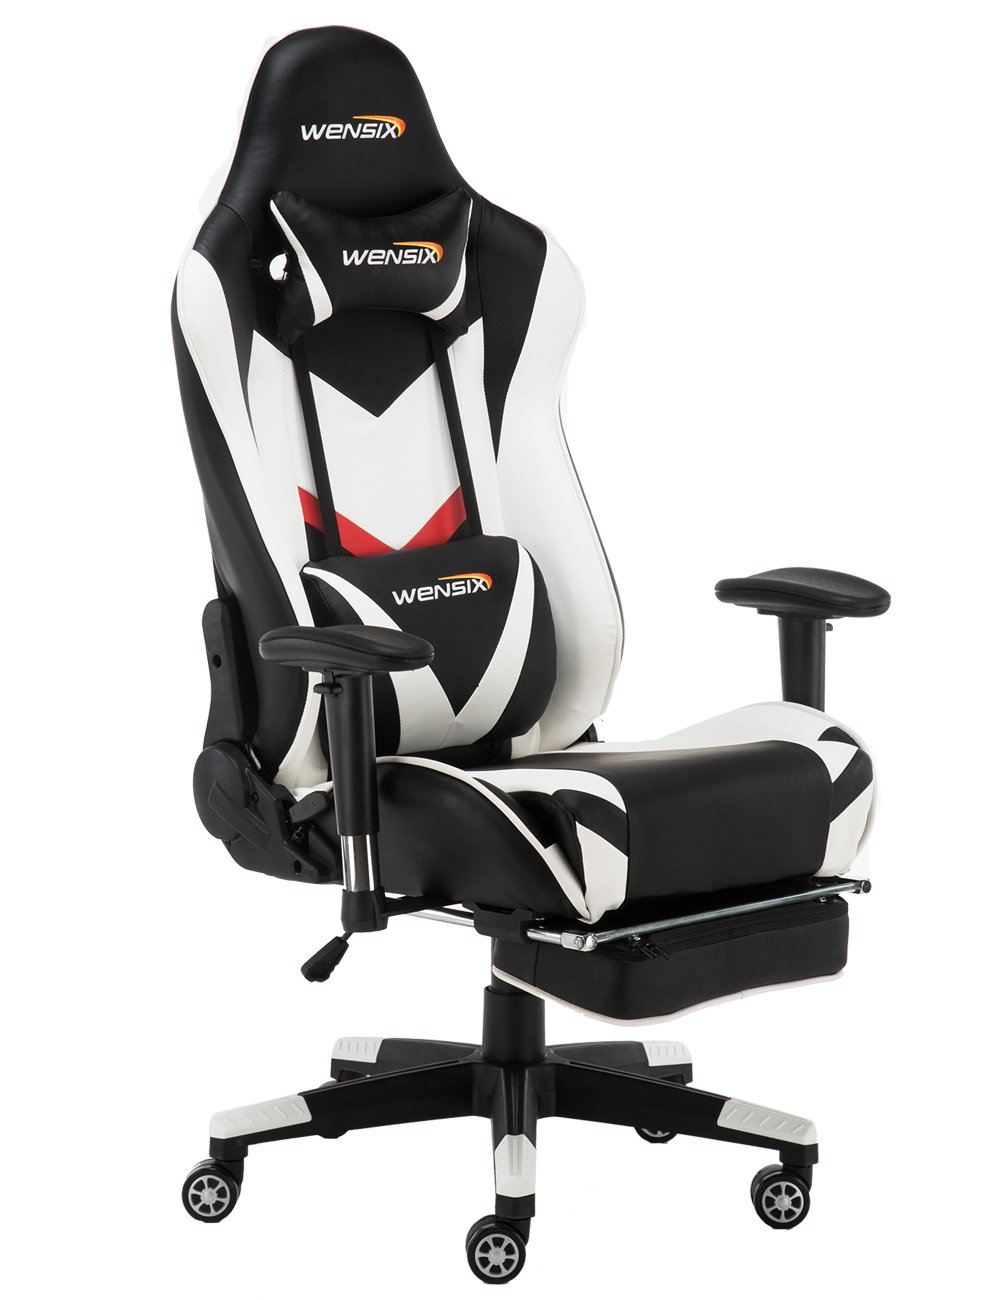 WENSIX Gaming Chair High Back Computer Chair With Adjusting Footrest, Ergonomic designs Extremely Durable PU Leather Steel Frame Racing Chair (White)